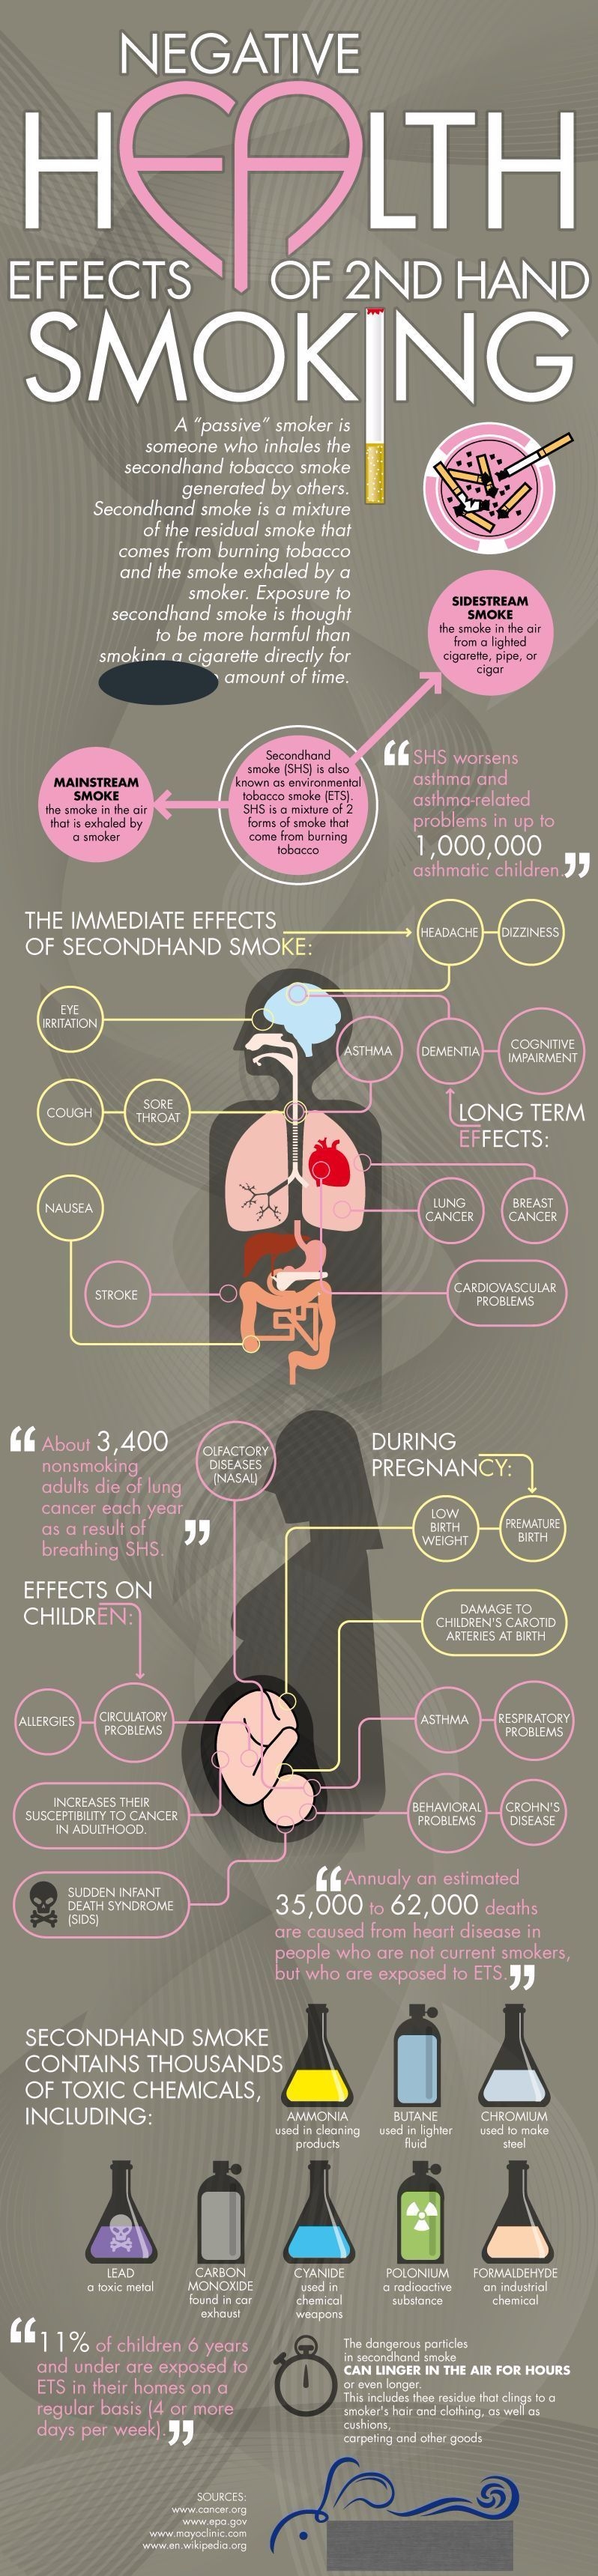 Effects of Secondhand Smoke  WebMD